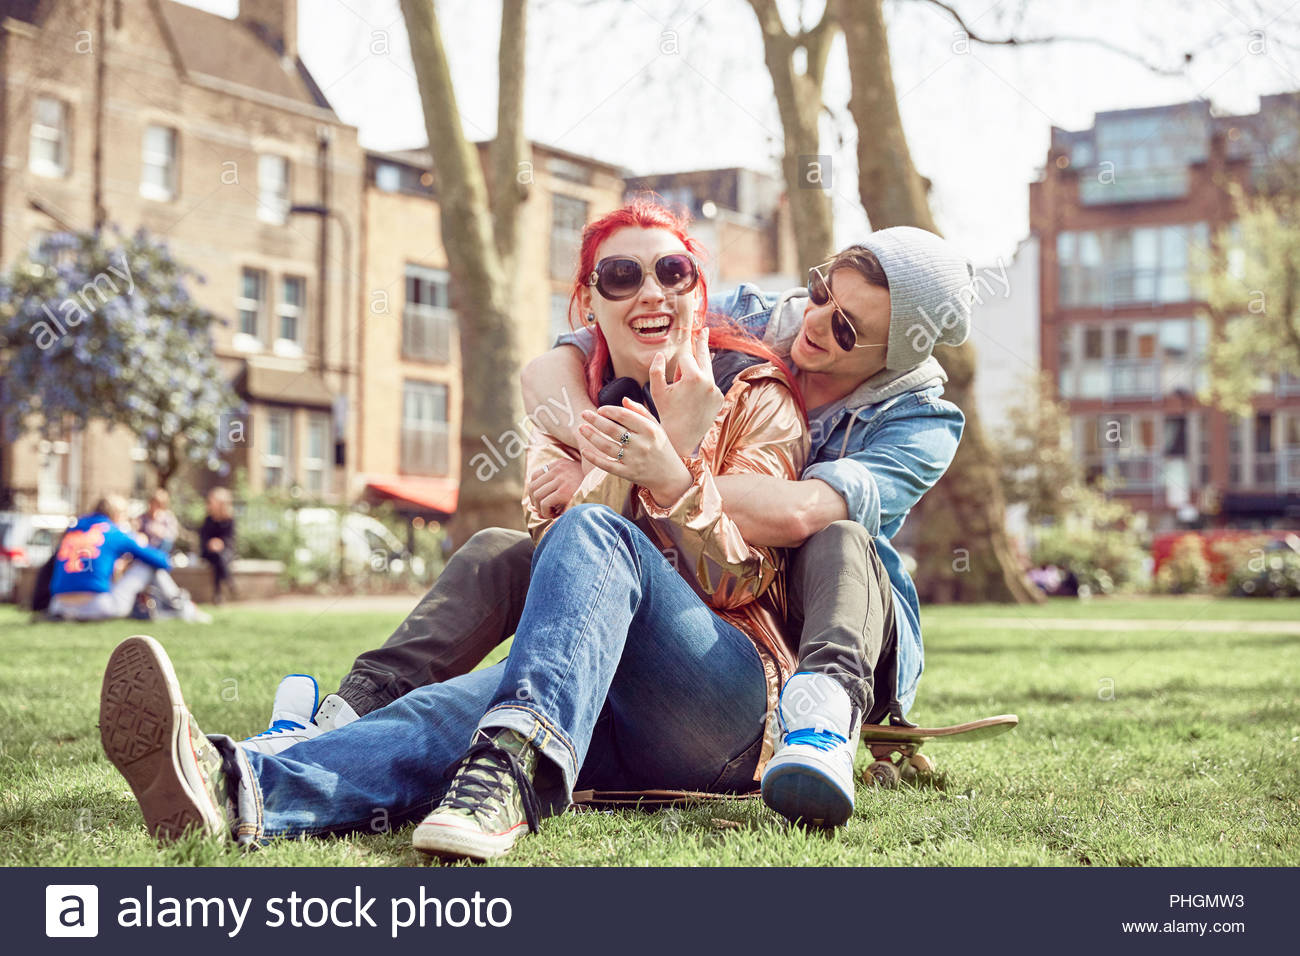 Teenage couple sitting together at park - Stock Image